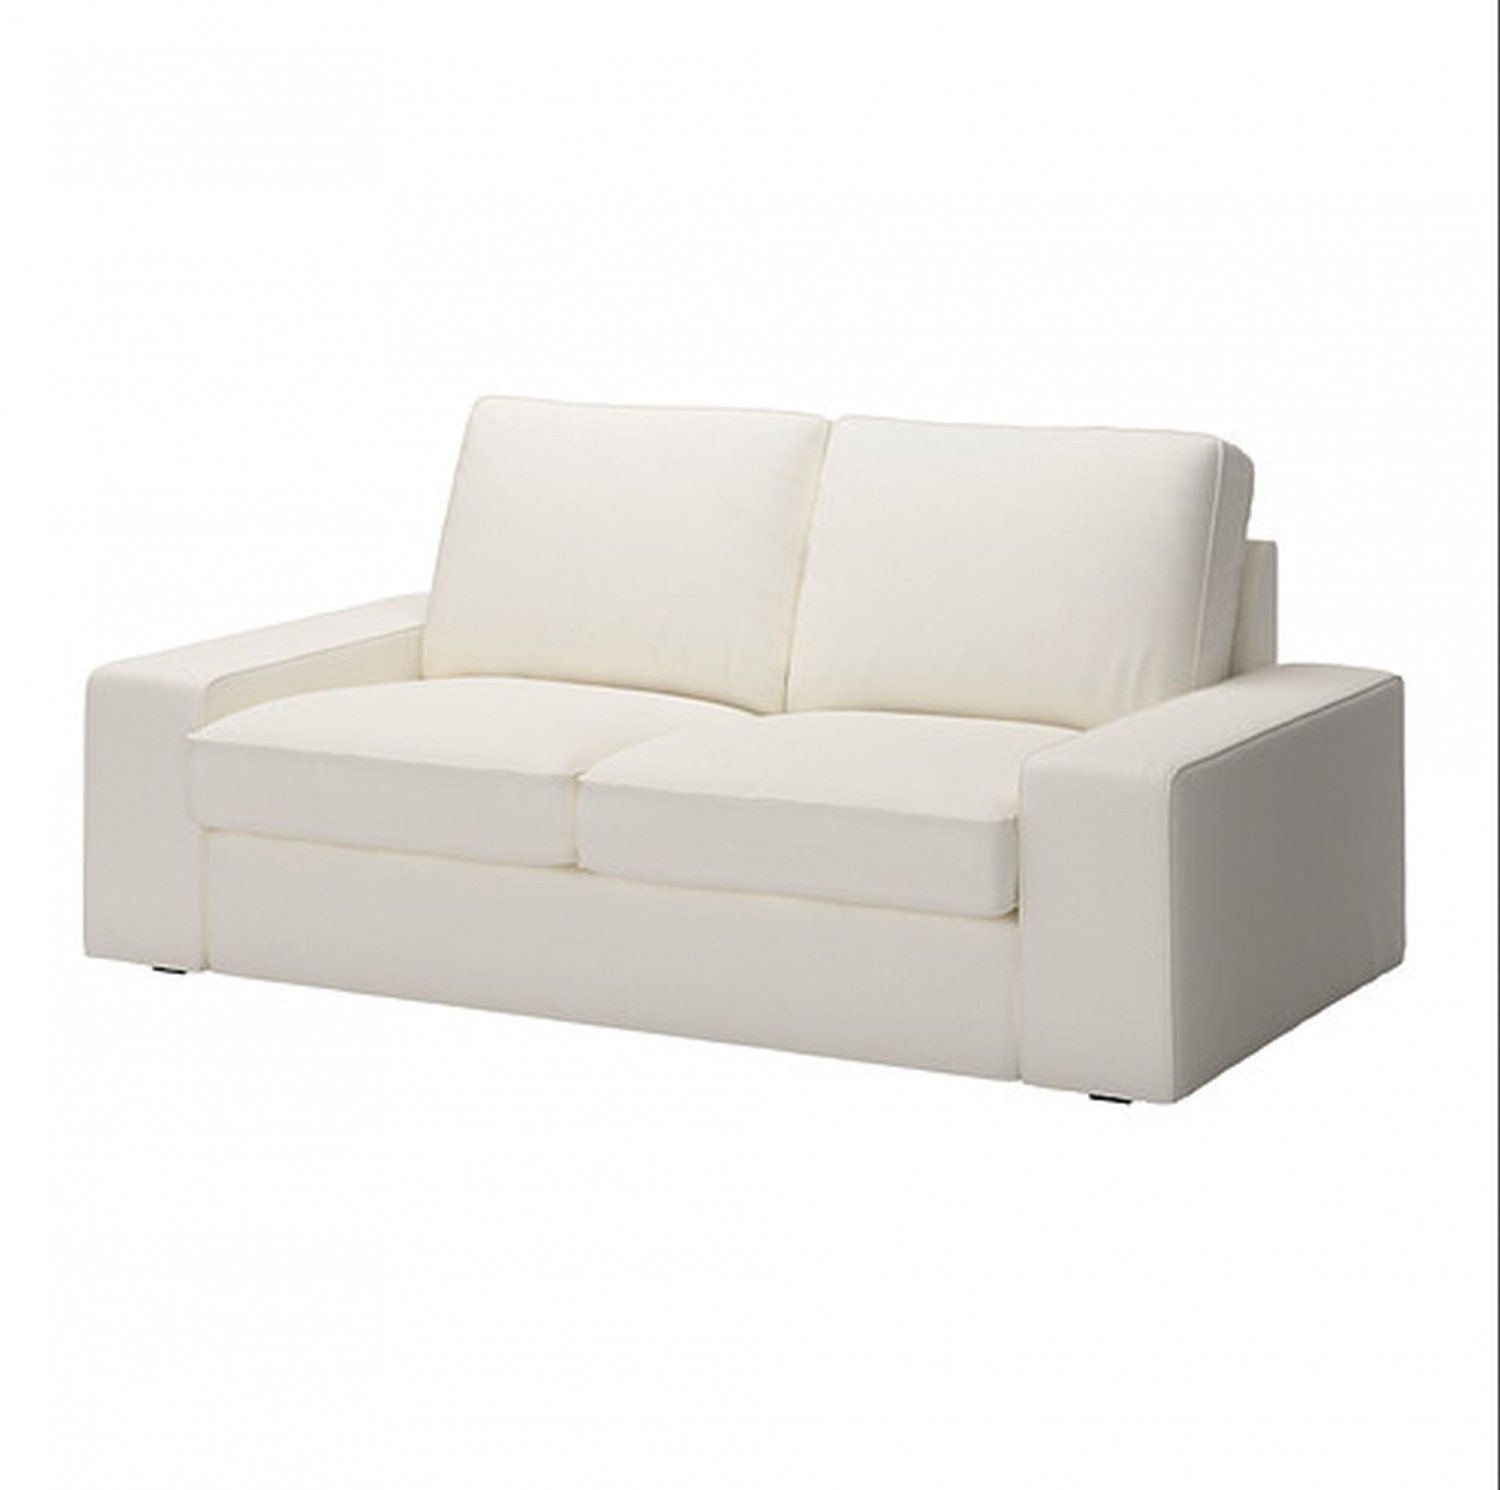 ikea kivik 2 seat sofa slipcover loveseat cover dansbo white. Black Bedroom Furniture Sets. Home Design Ideas